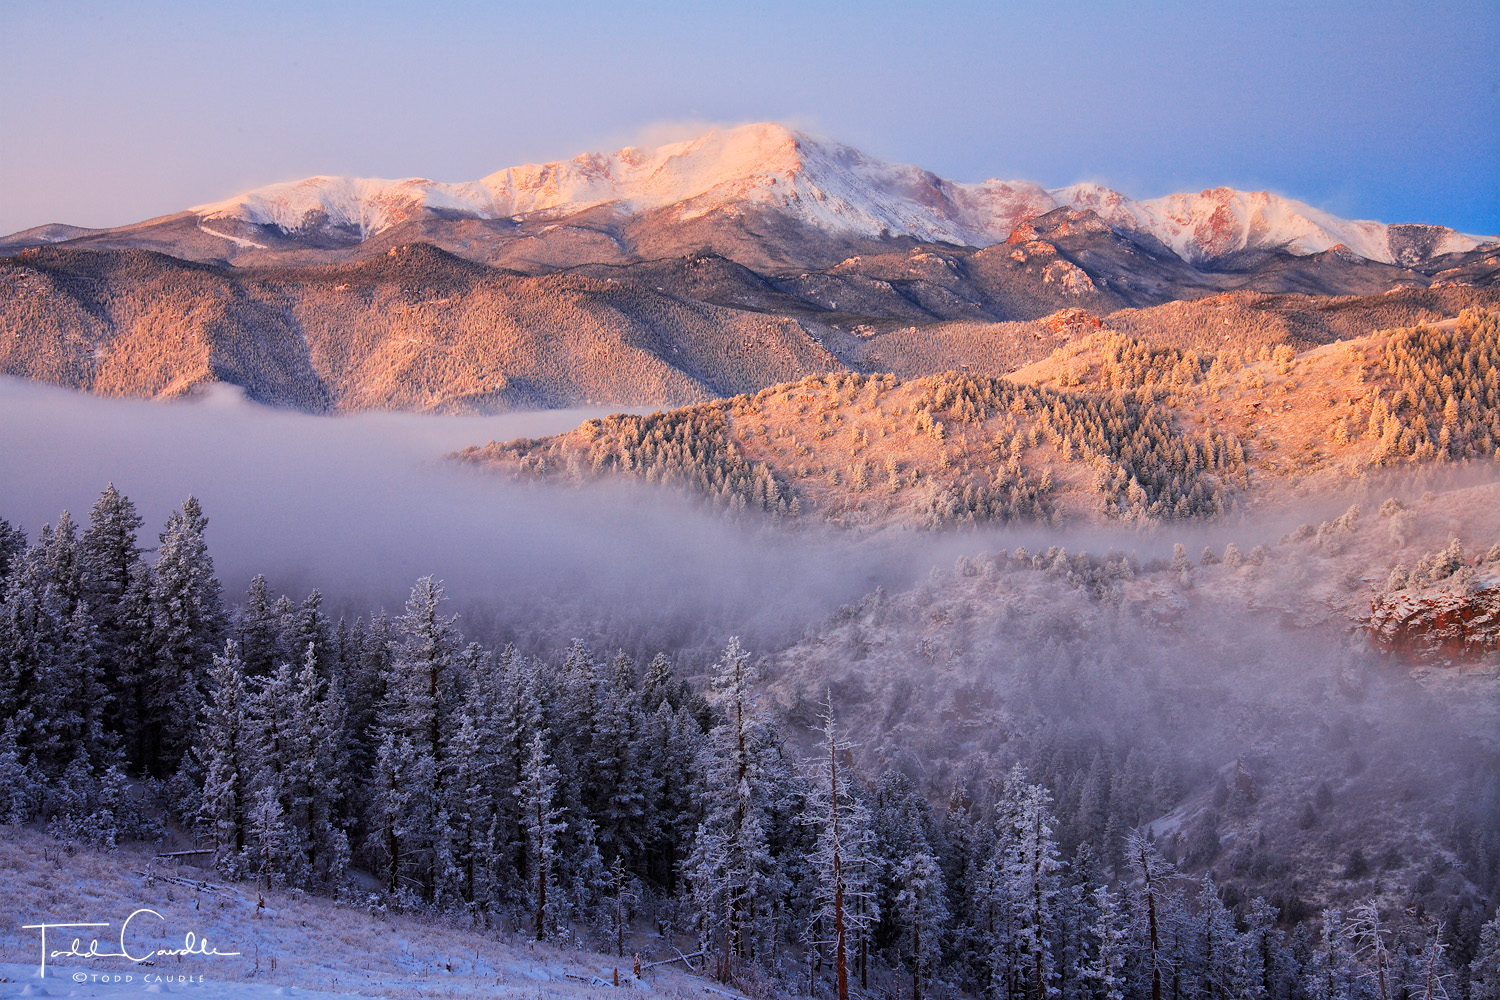 Alpenglow light illuminates Pikes Peak above a forest of frost and fog.